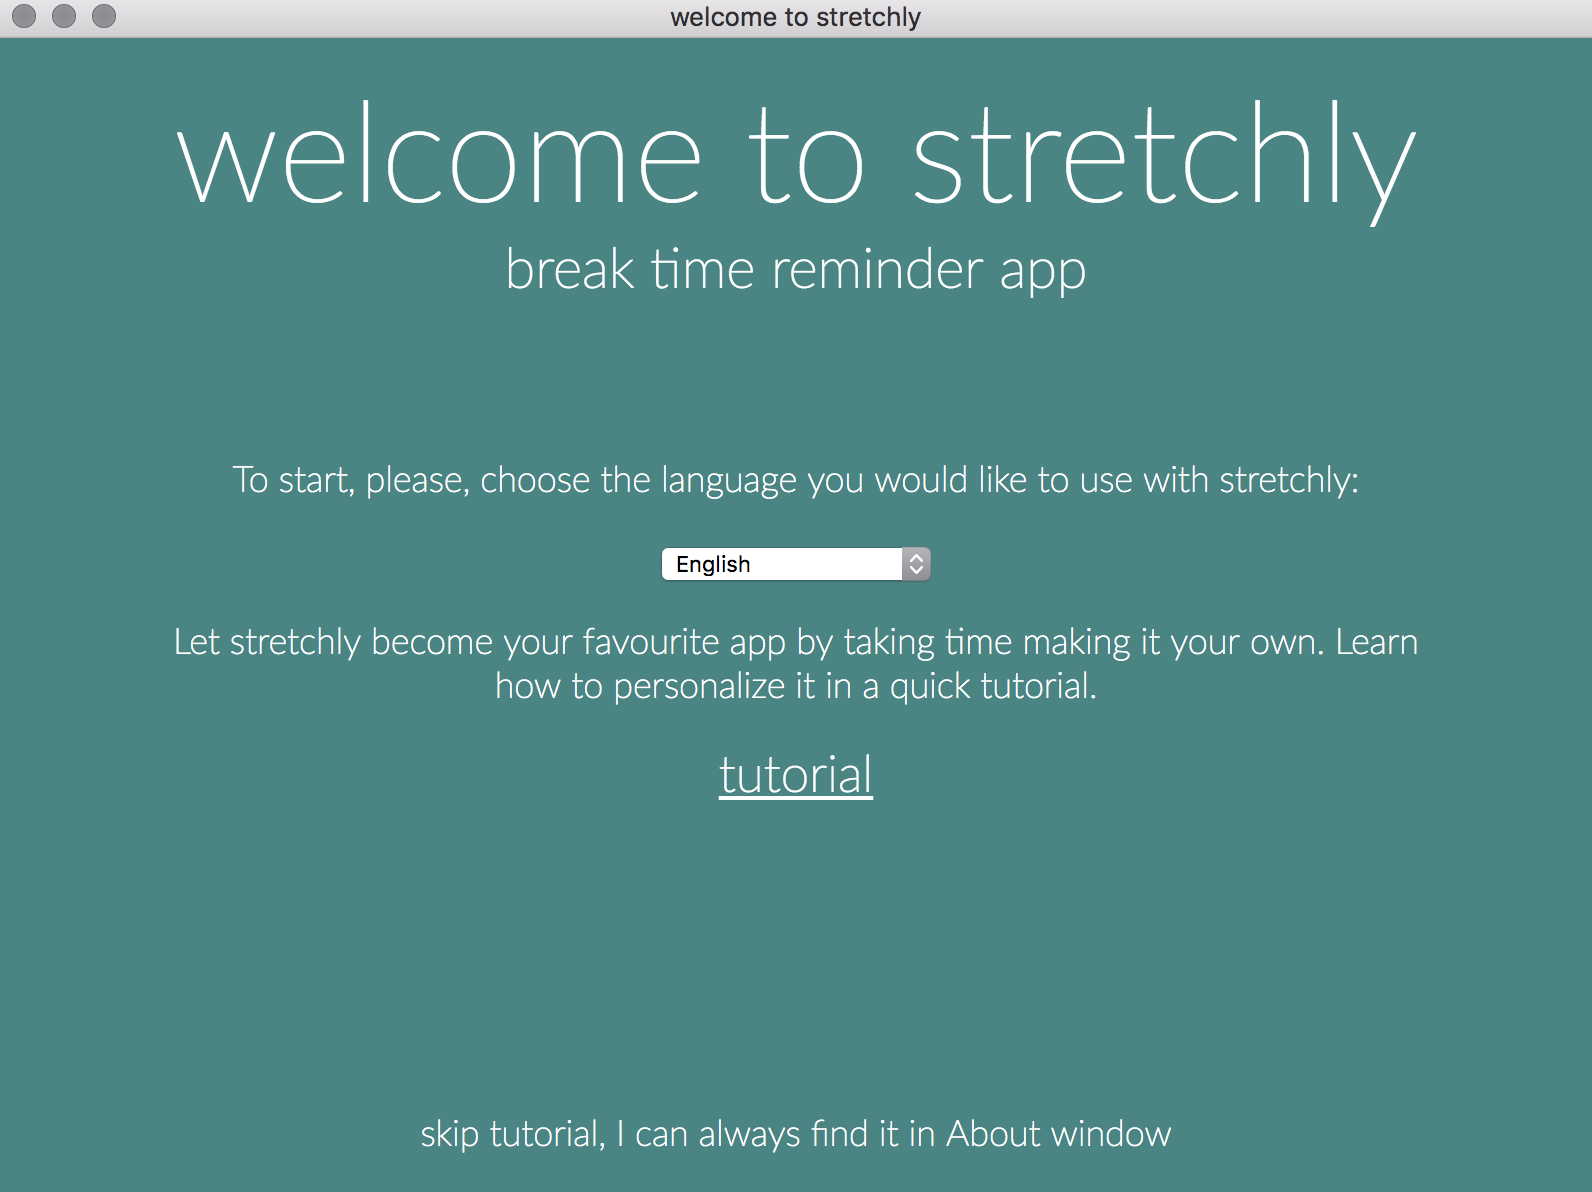 stretchly welcome